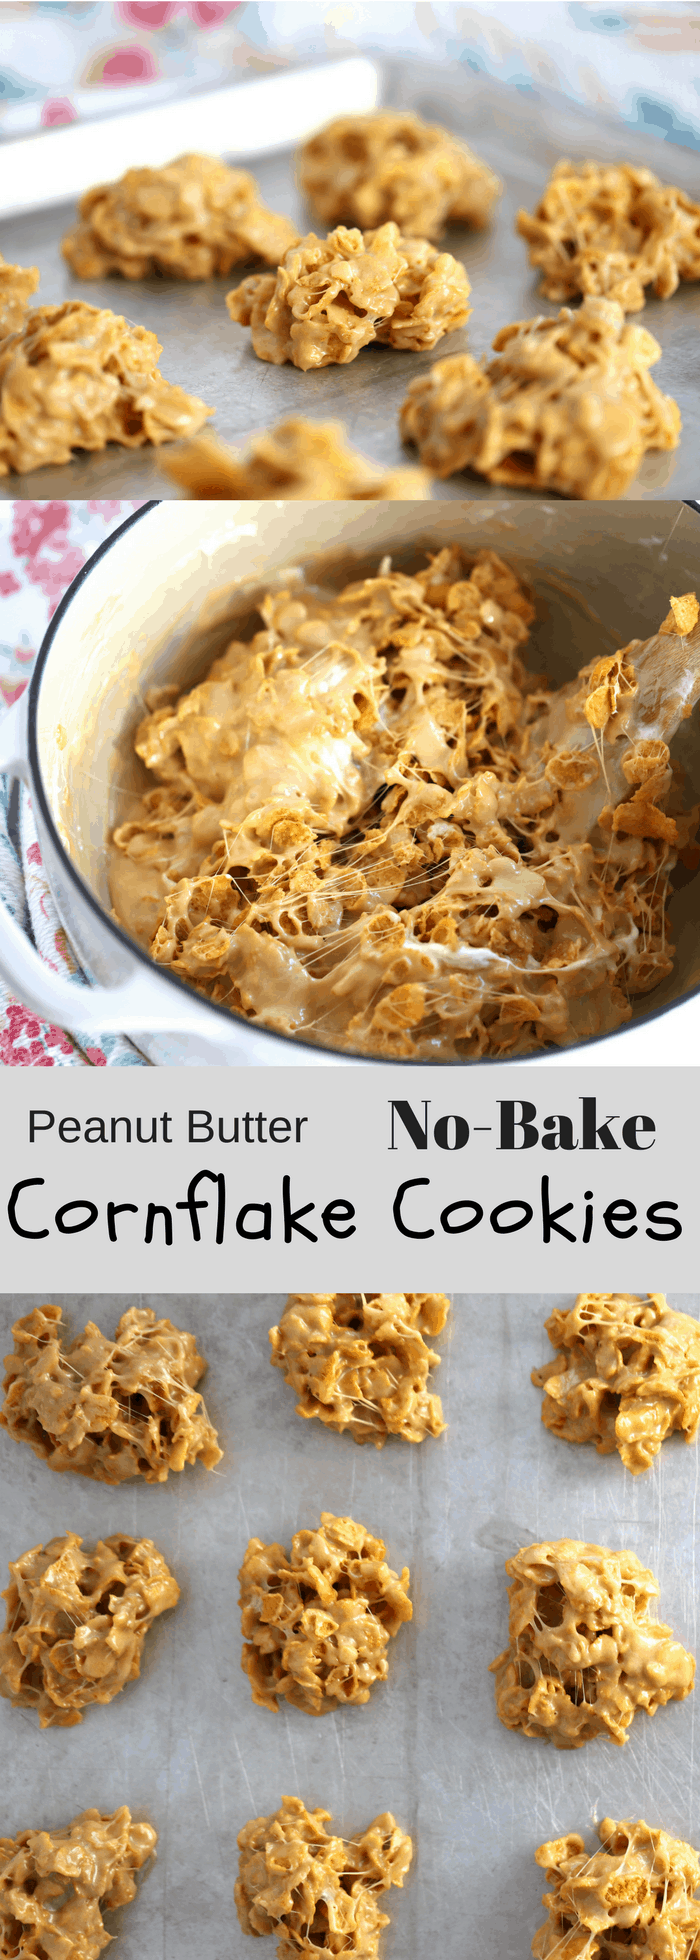 Cornflake Peanut Butter Cookies | thecarefreekitchen.com